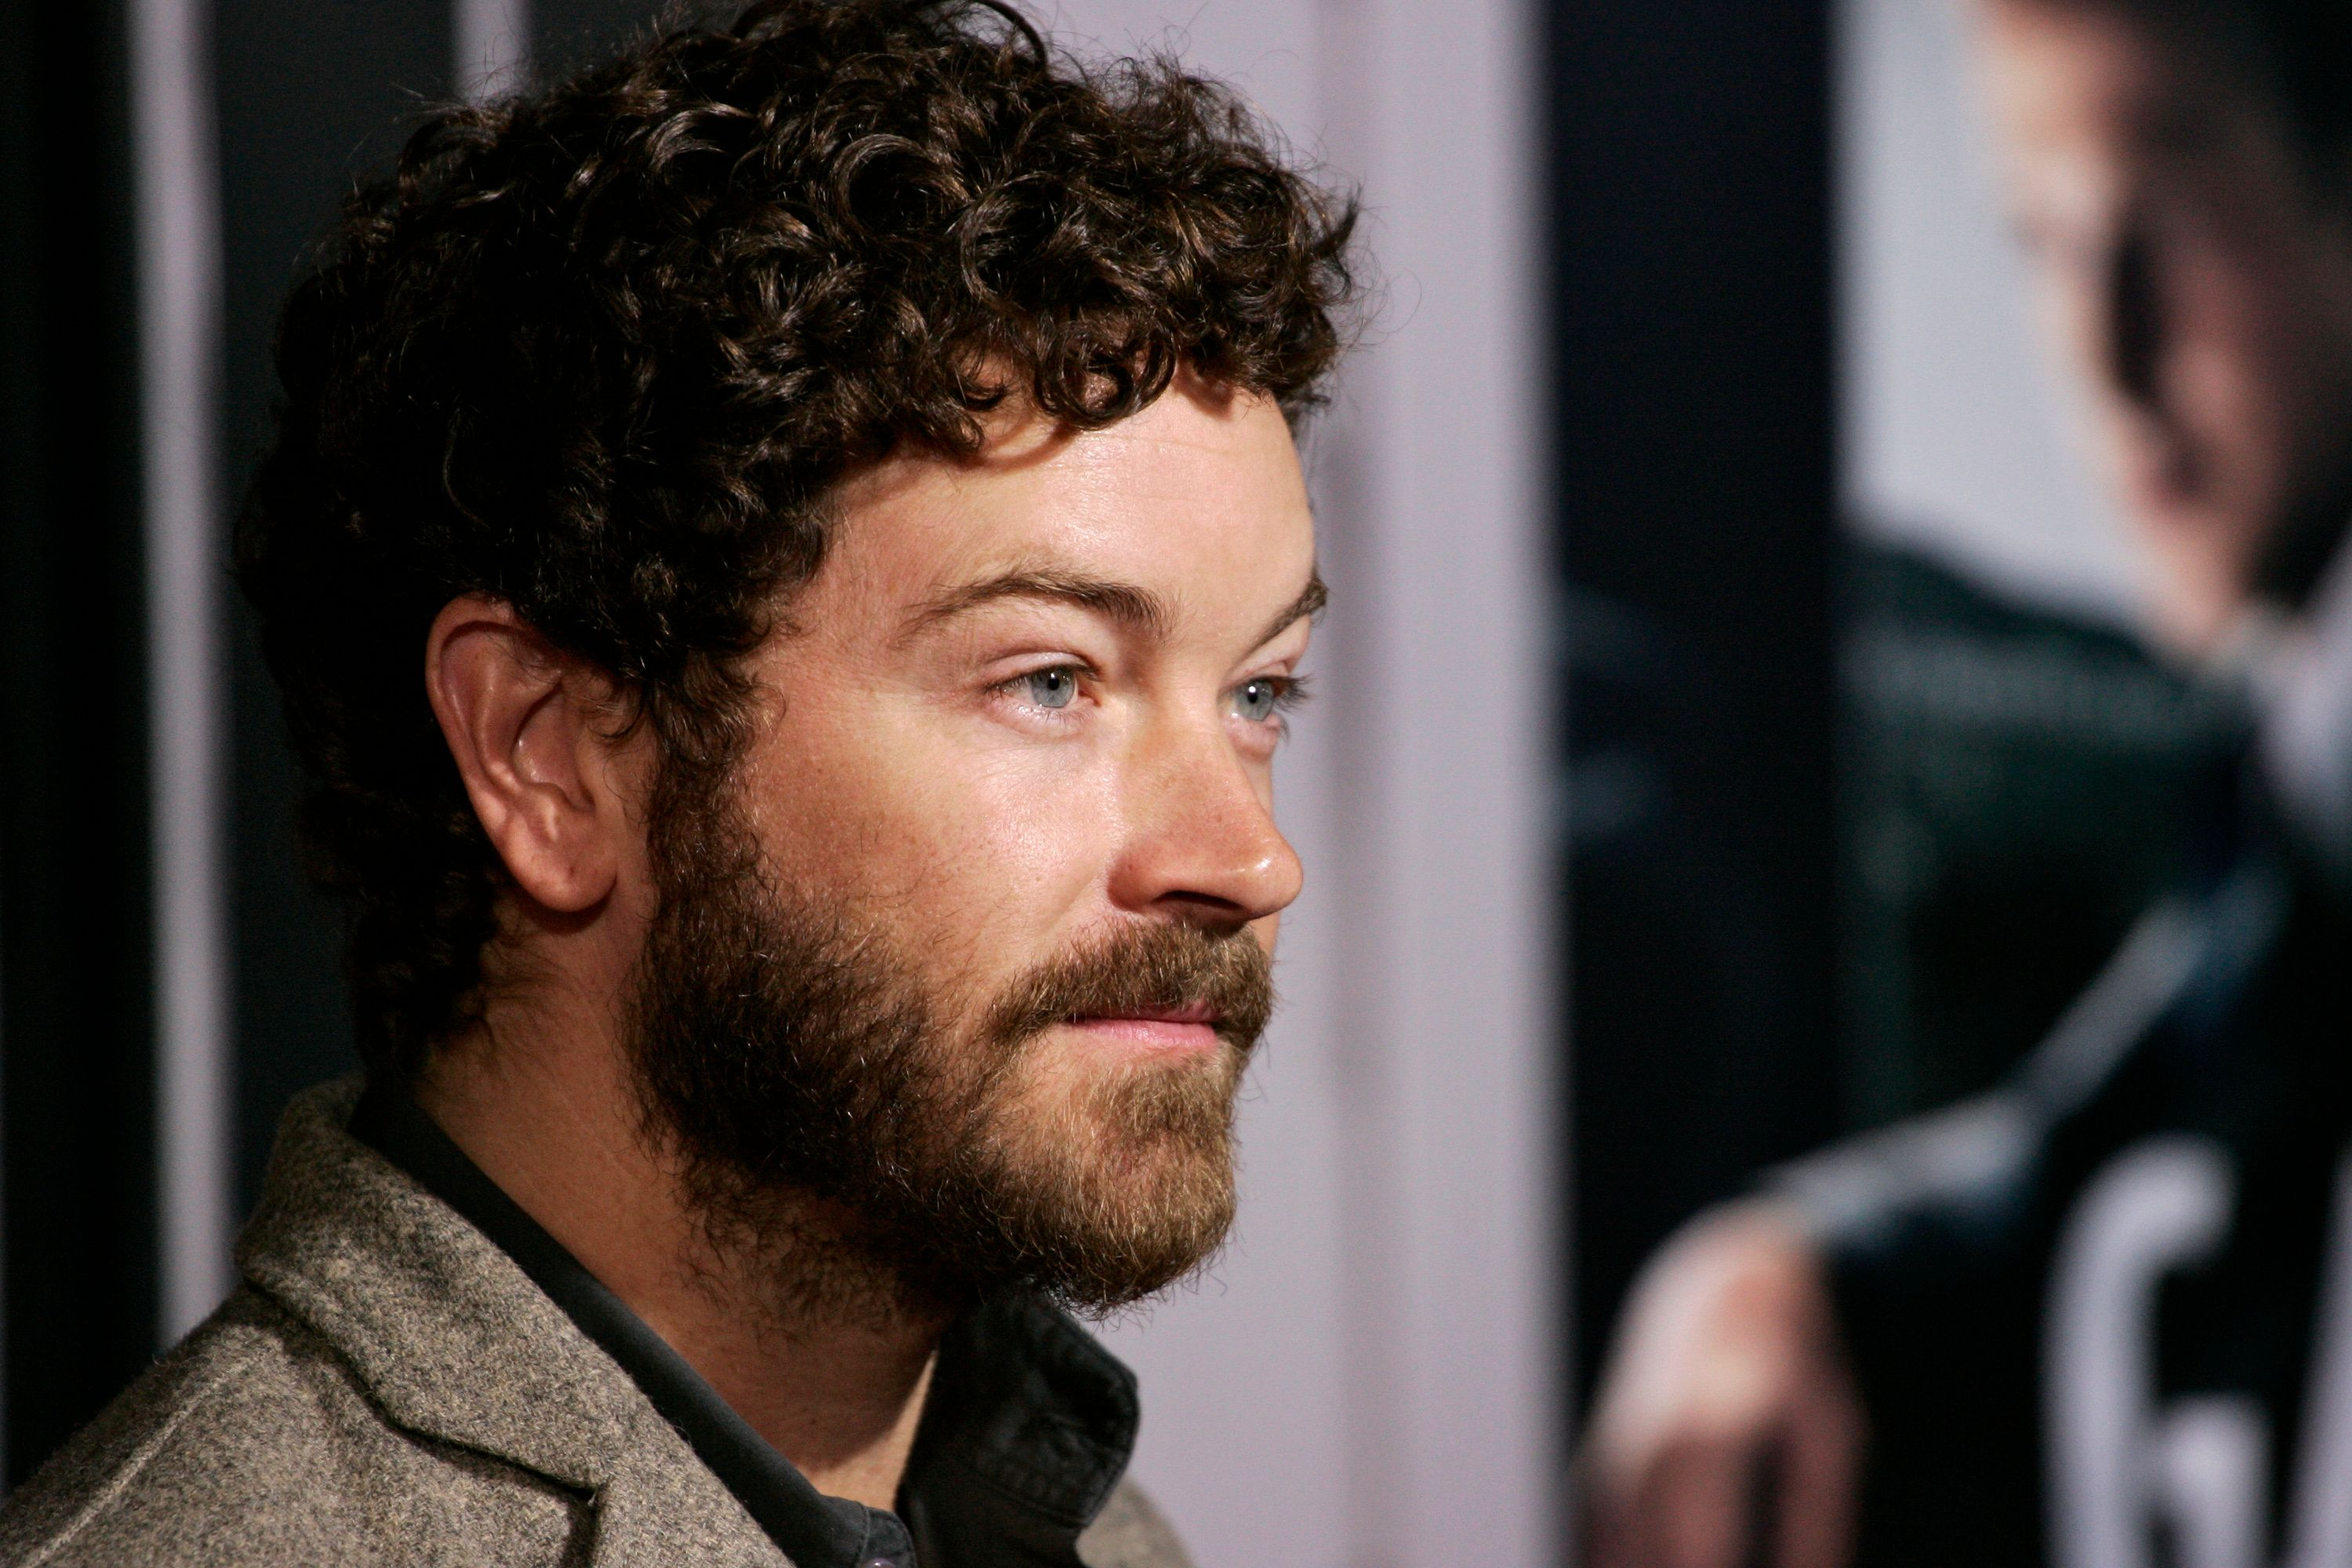 Netflix cuts ties with Danny Masterson after rape allegations